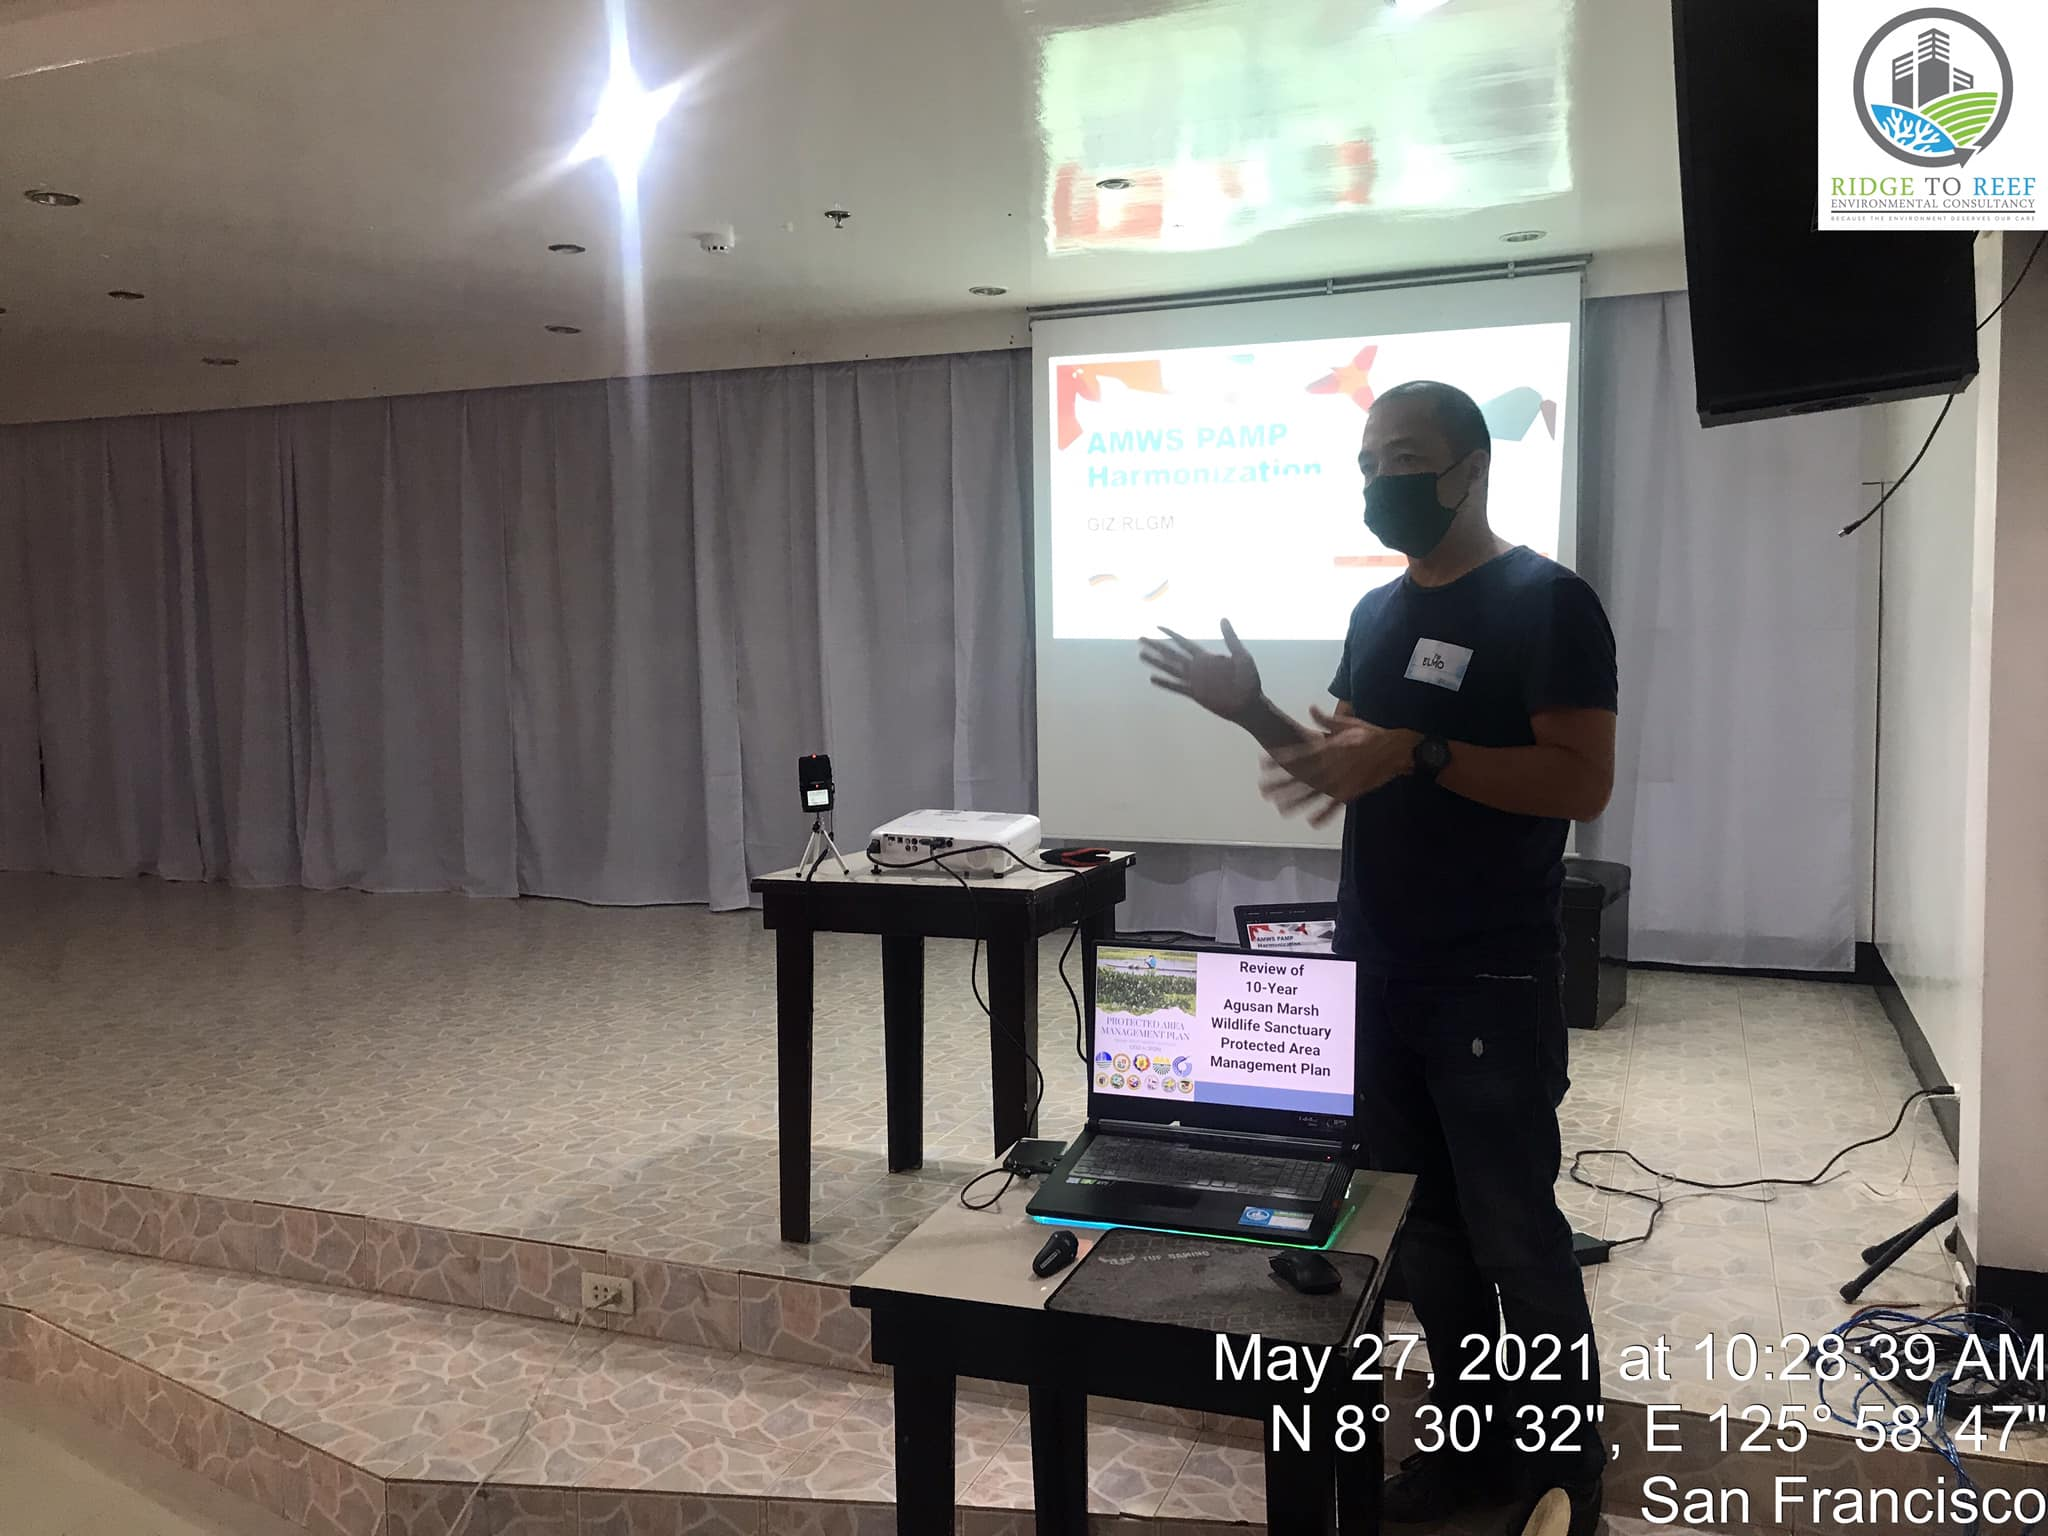 Plan Review of Agusan Marsh Wildlife Sanctuary Protected Area Management Plan (AMWS PAMP)